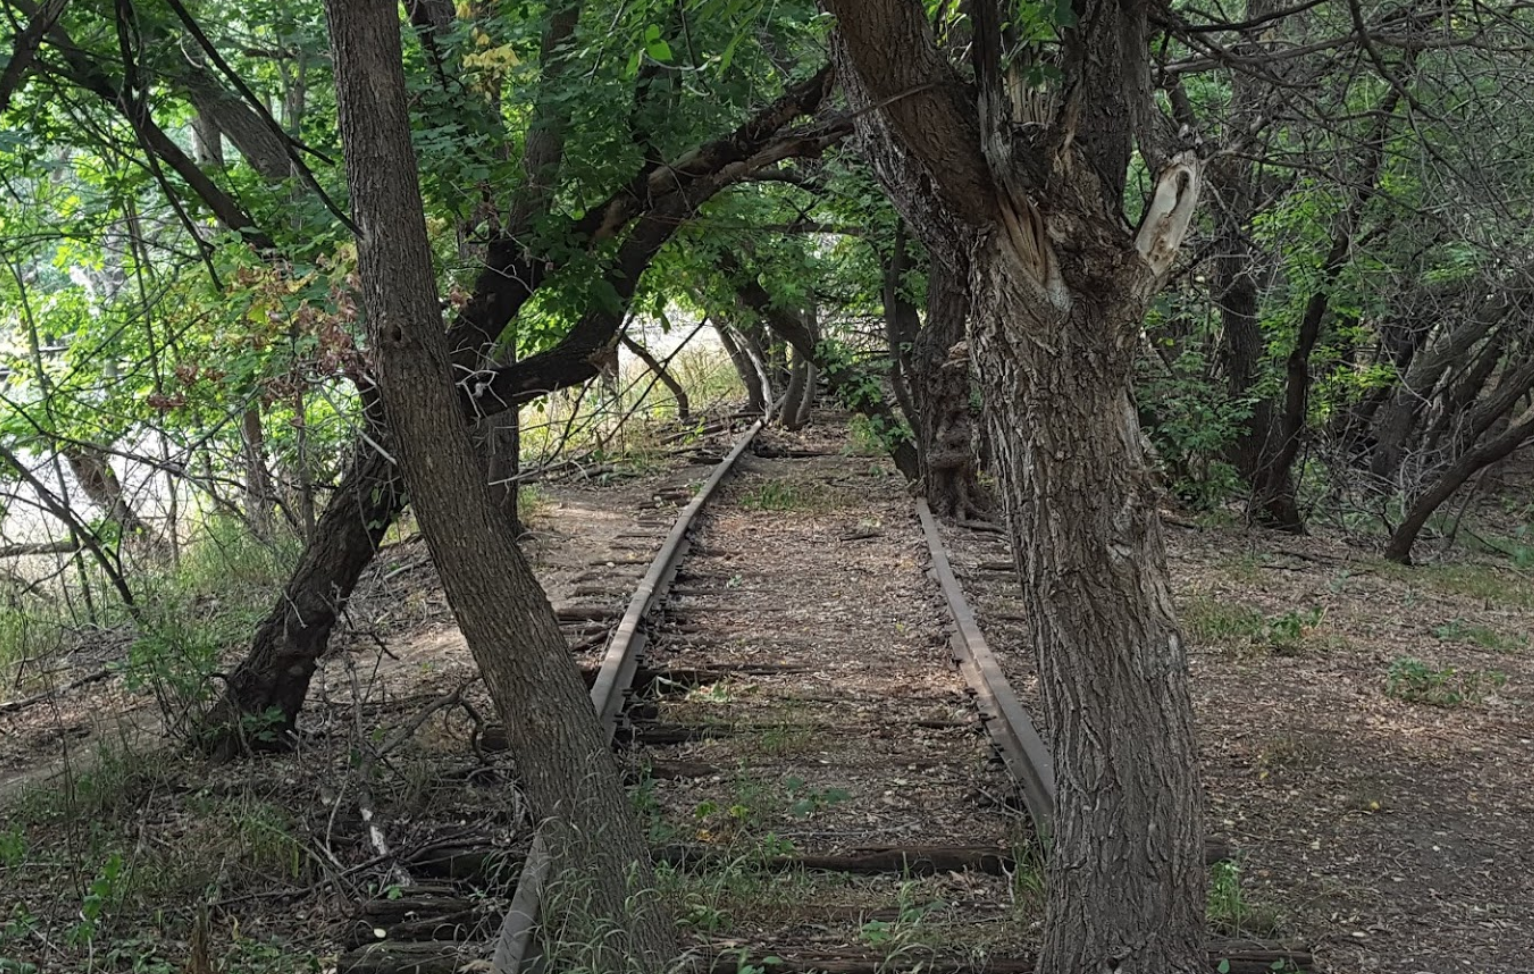 Walk Alongside A River, Abandoned Railroad Track, And More On The Bison Plant Trail In North Dakota